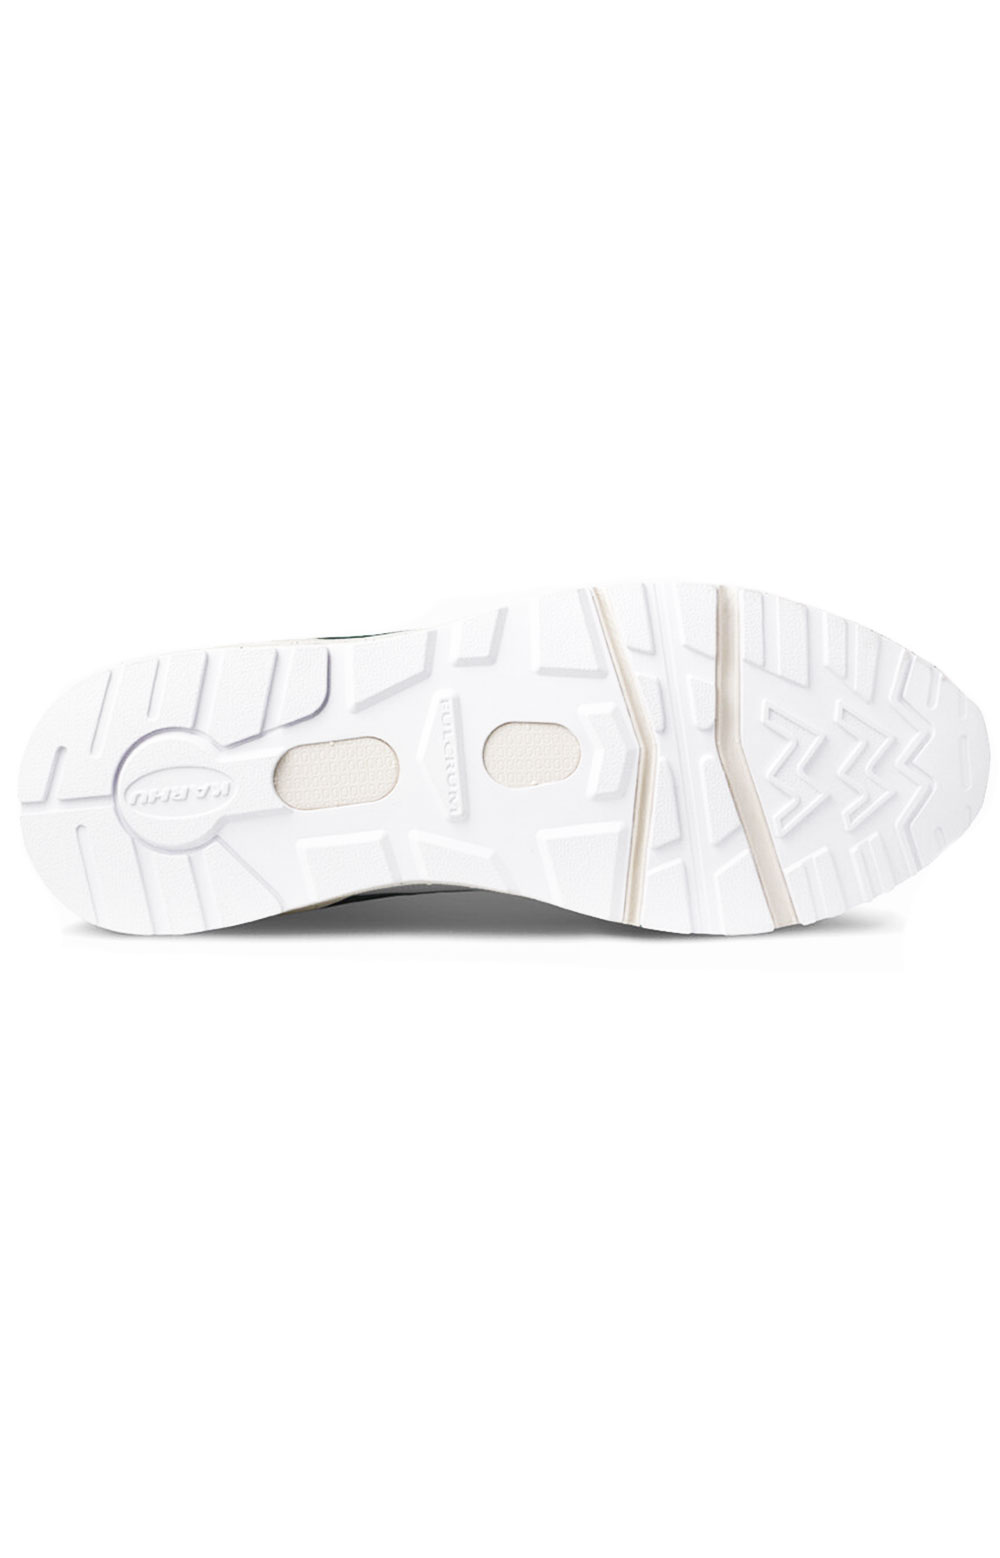 (F804099) Fusion 2.0 Shoes - Bright White/Blue Spruce  4